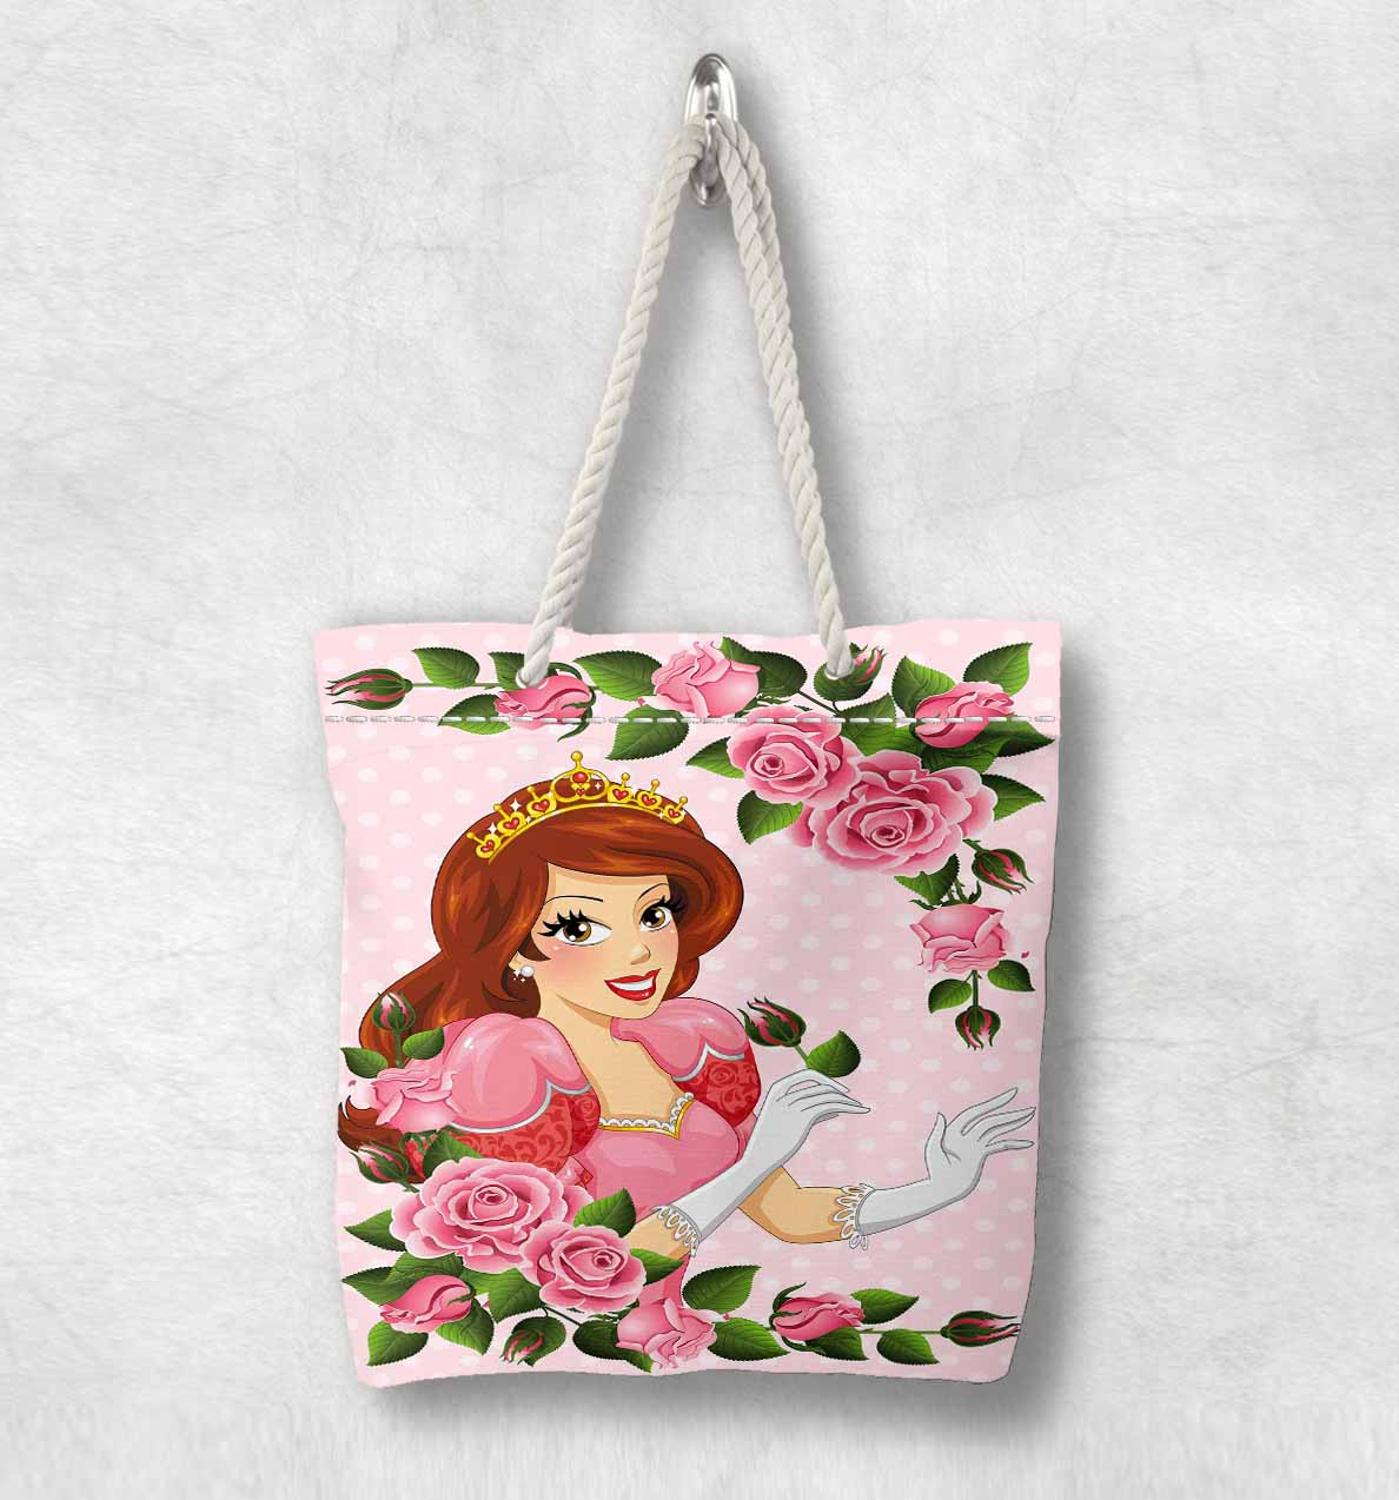 Anders Roze Rozen Prinses Bloemen Bloemen Mode Wit Touw Handvat Canvas Tas Cartoon Print Ritssluiting Tote Bag Schoudertas